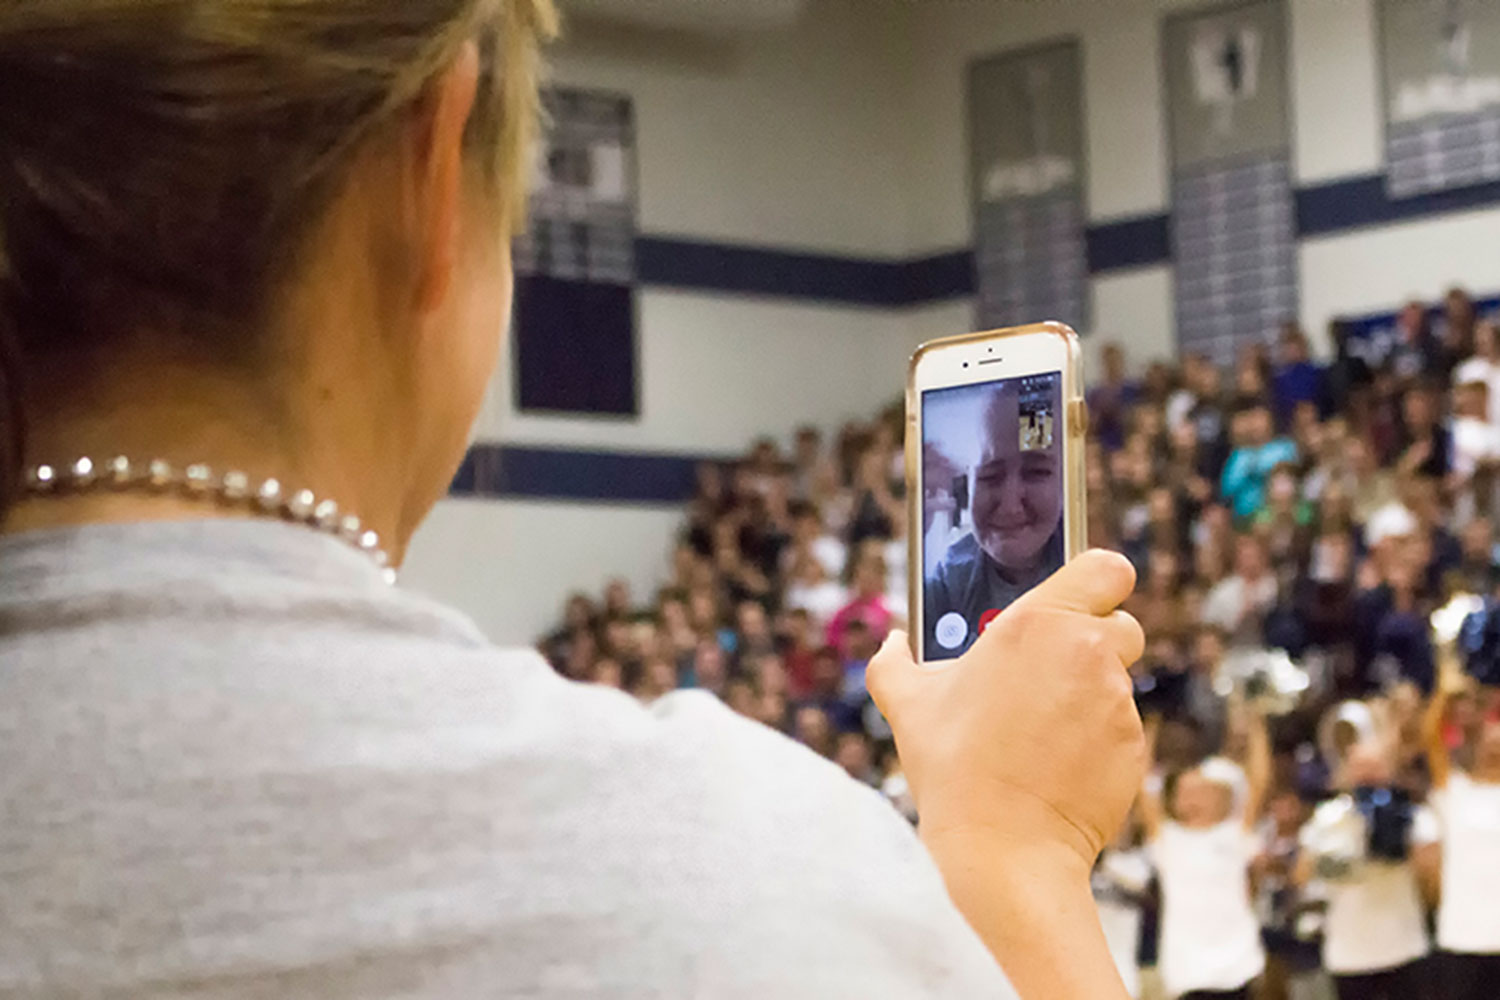 At the homecoming pep assembly on Sept. 30, Assistant Principal FaceTimed Mrs. Roxanne Fetsch, who was diagnosed with adult acute lymphoblastic leukemia at the beginning of the school year and has not been able to participate in her beloved school activities.